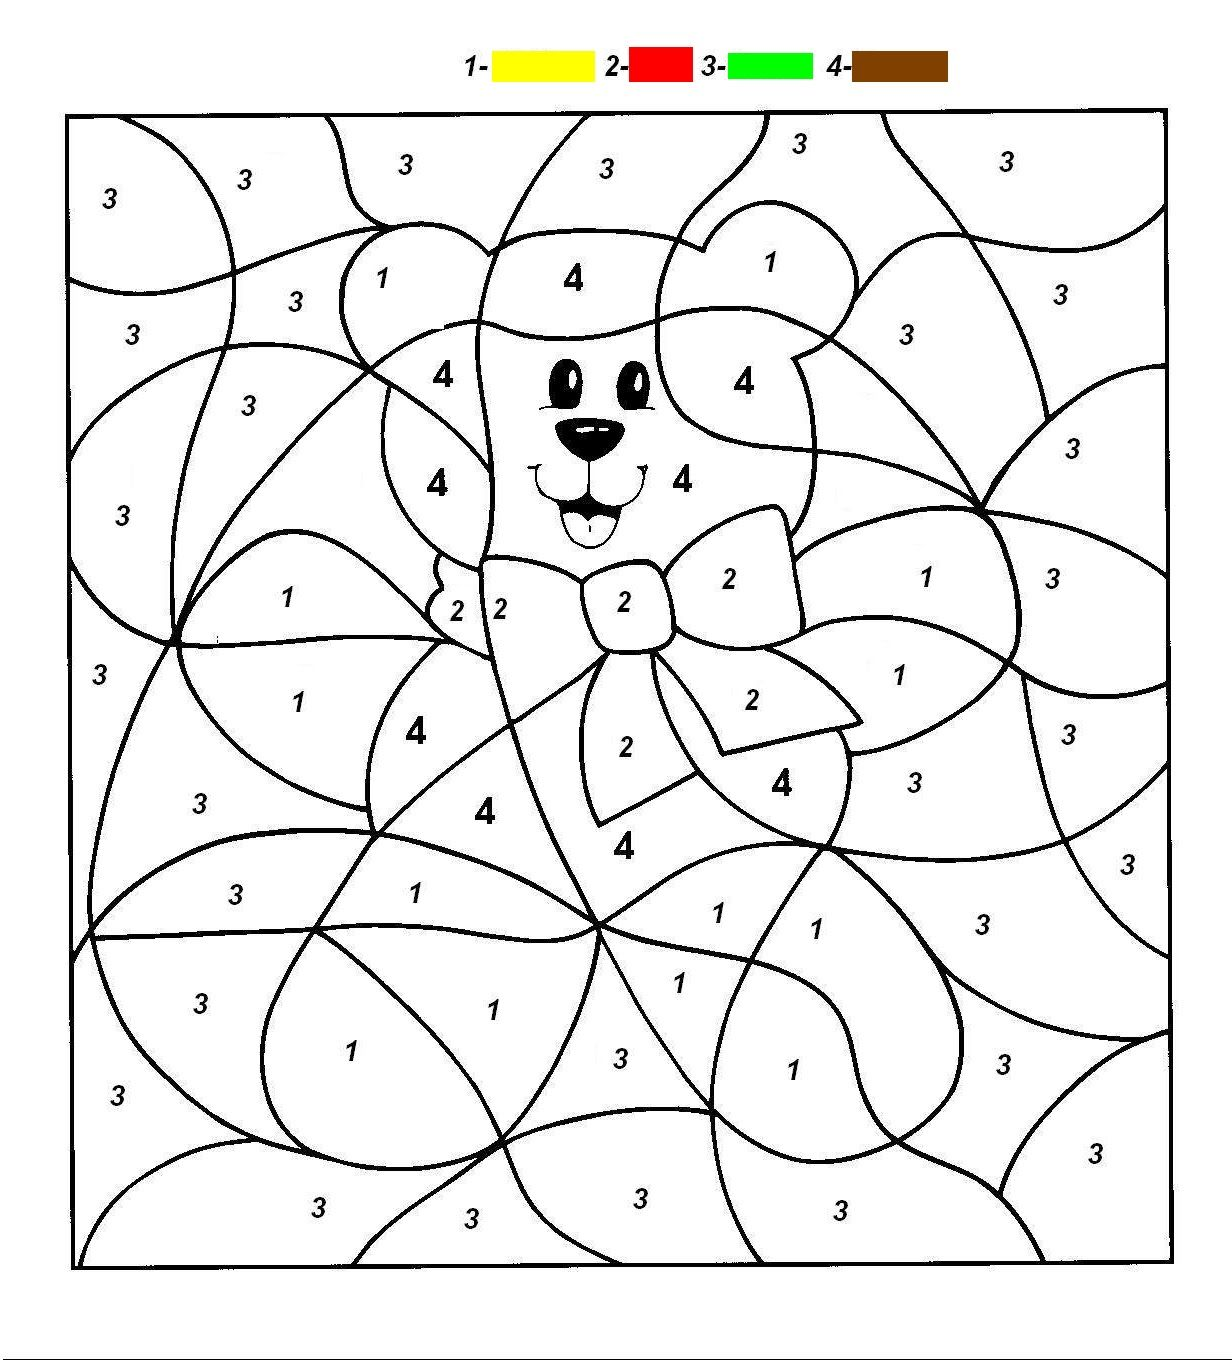 27 Inspiration Image Of Printable Number Coloring Pages Albanysinsanity Com Kindergarten Coloring Pages Valentine Coloring Pages Christmas Coloring Pages